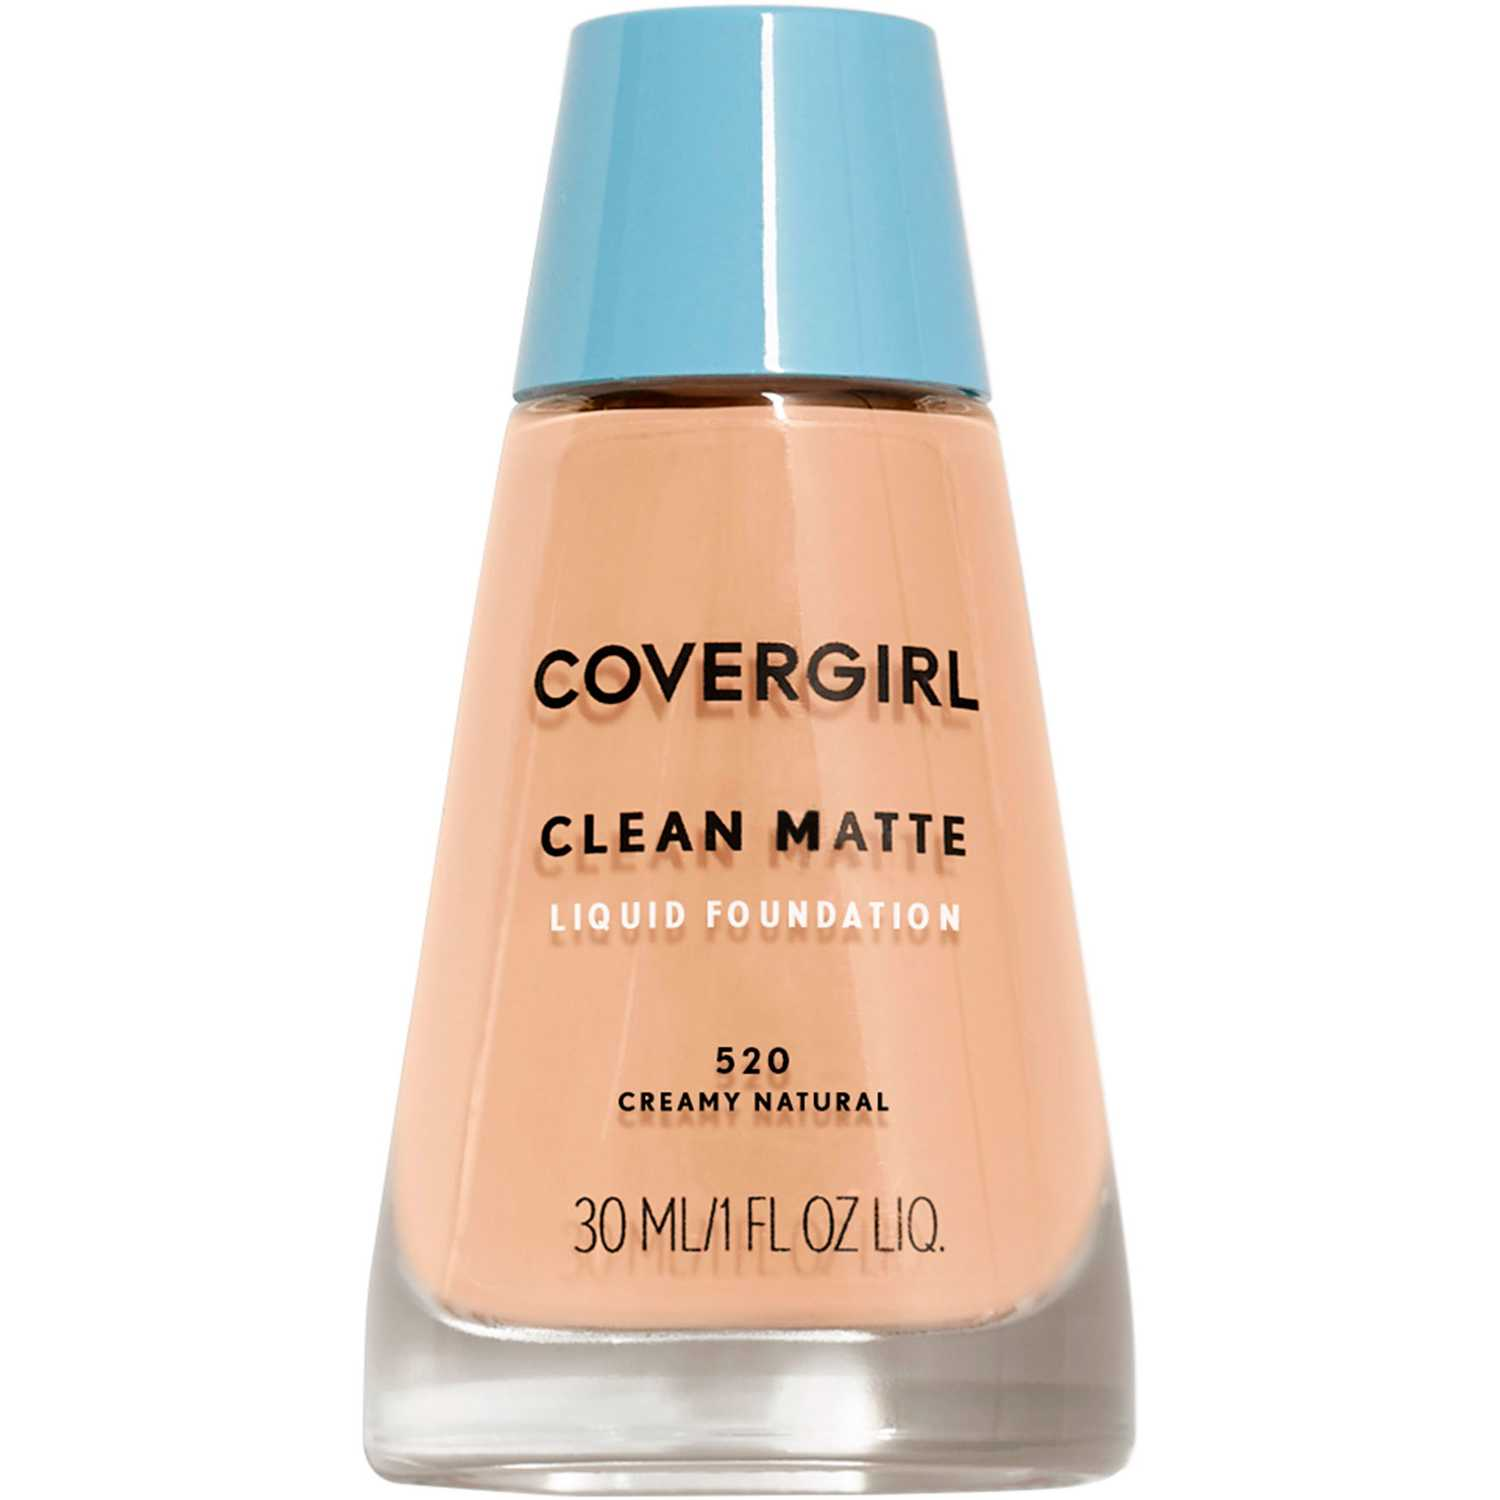 Covergirl Base Clean Matte Liquid Foundation Creamy Natural 520 Bases